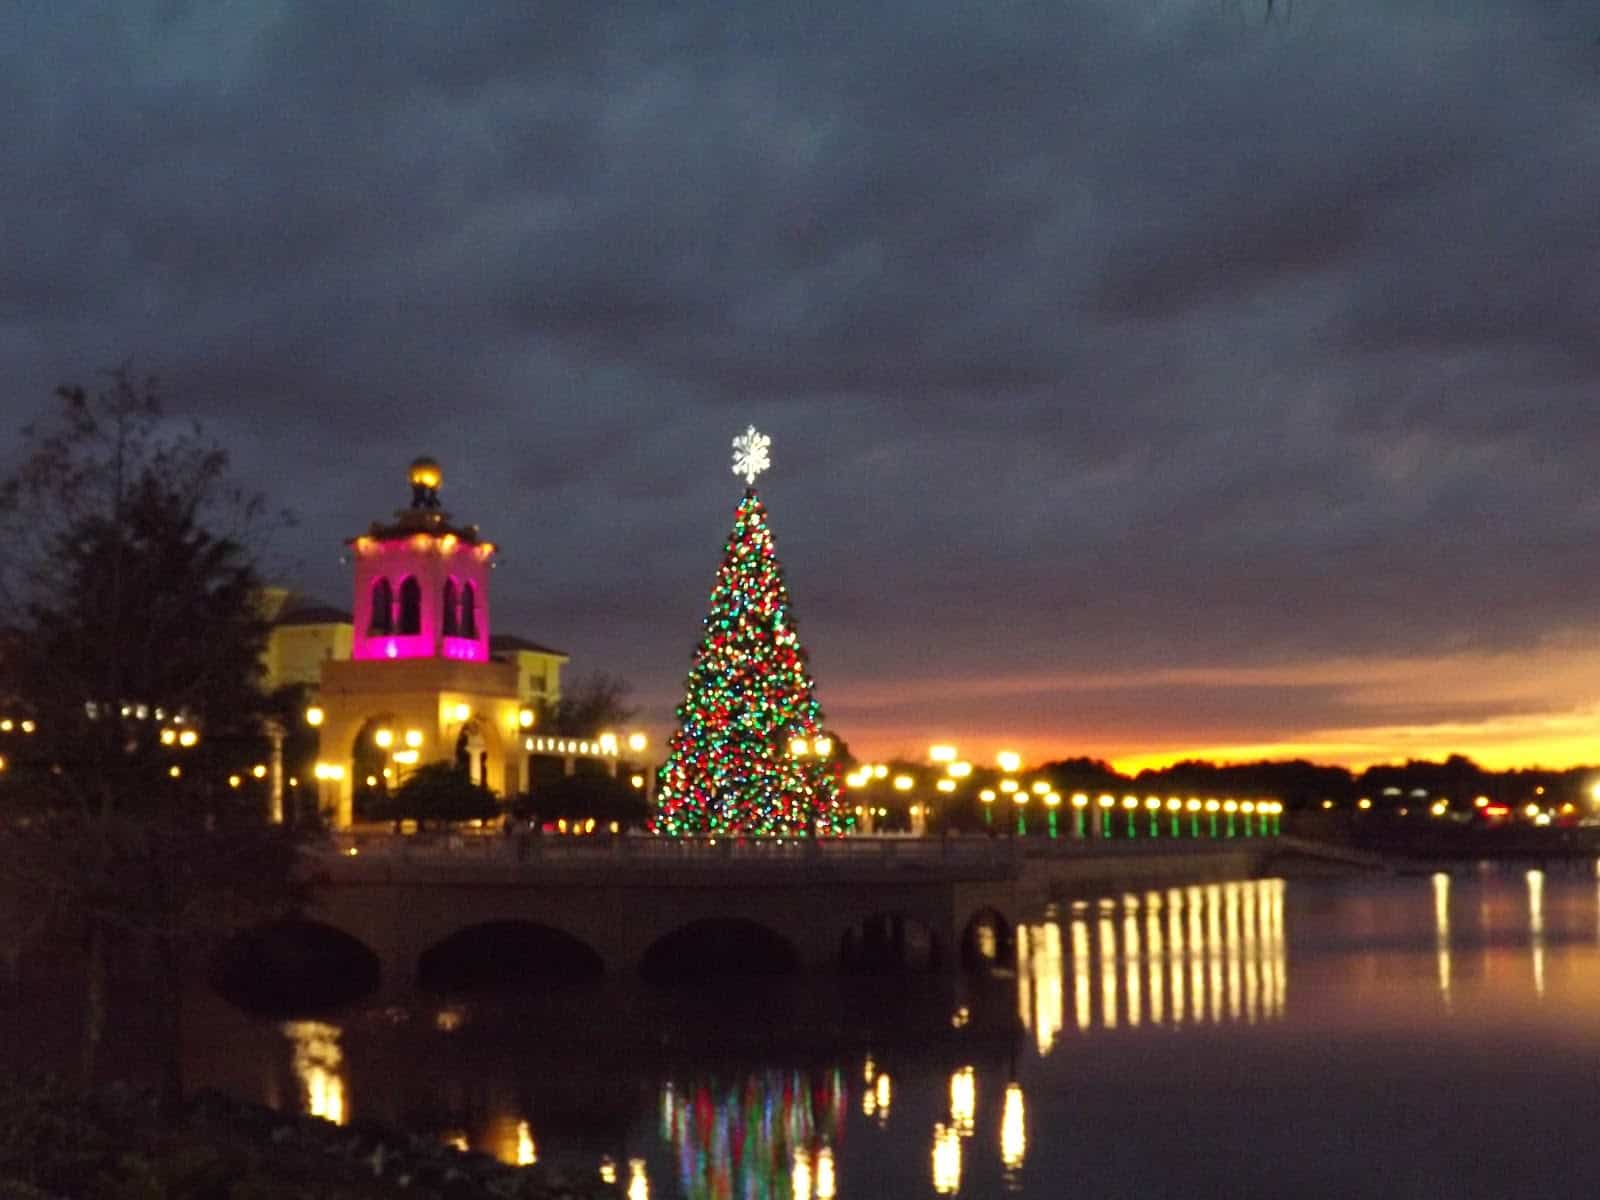 Christmas Events In Central Florida 2020 Christmas Events 2020 Central Florida   Axbnyw.infonewyear.site